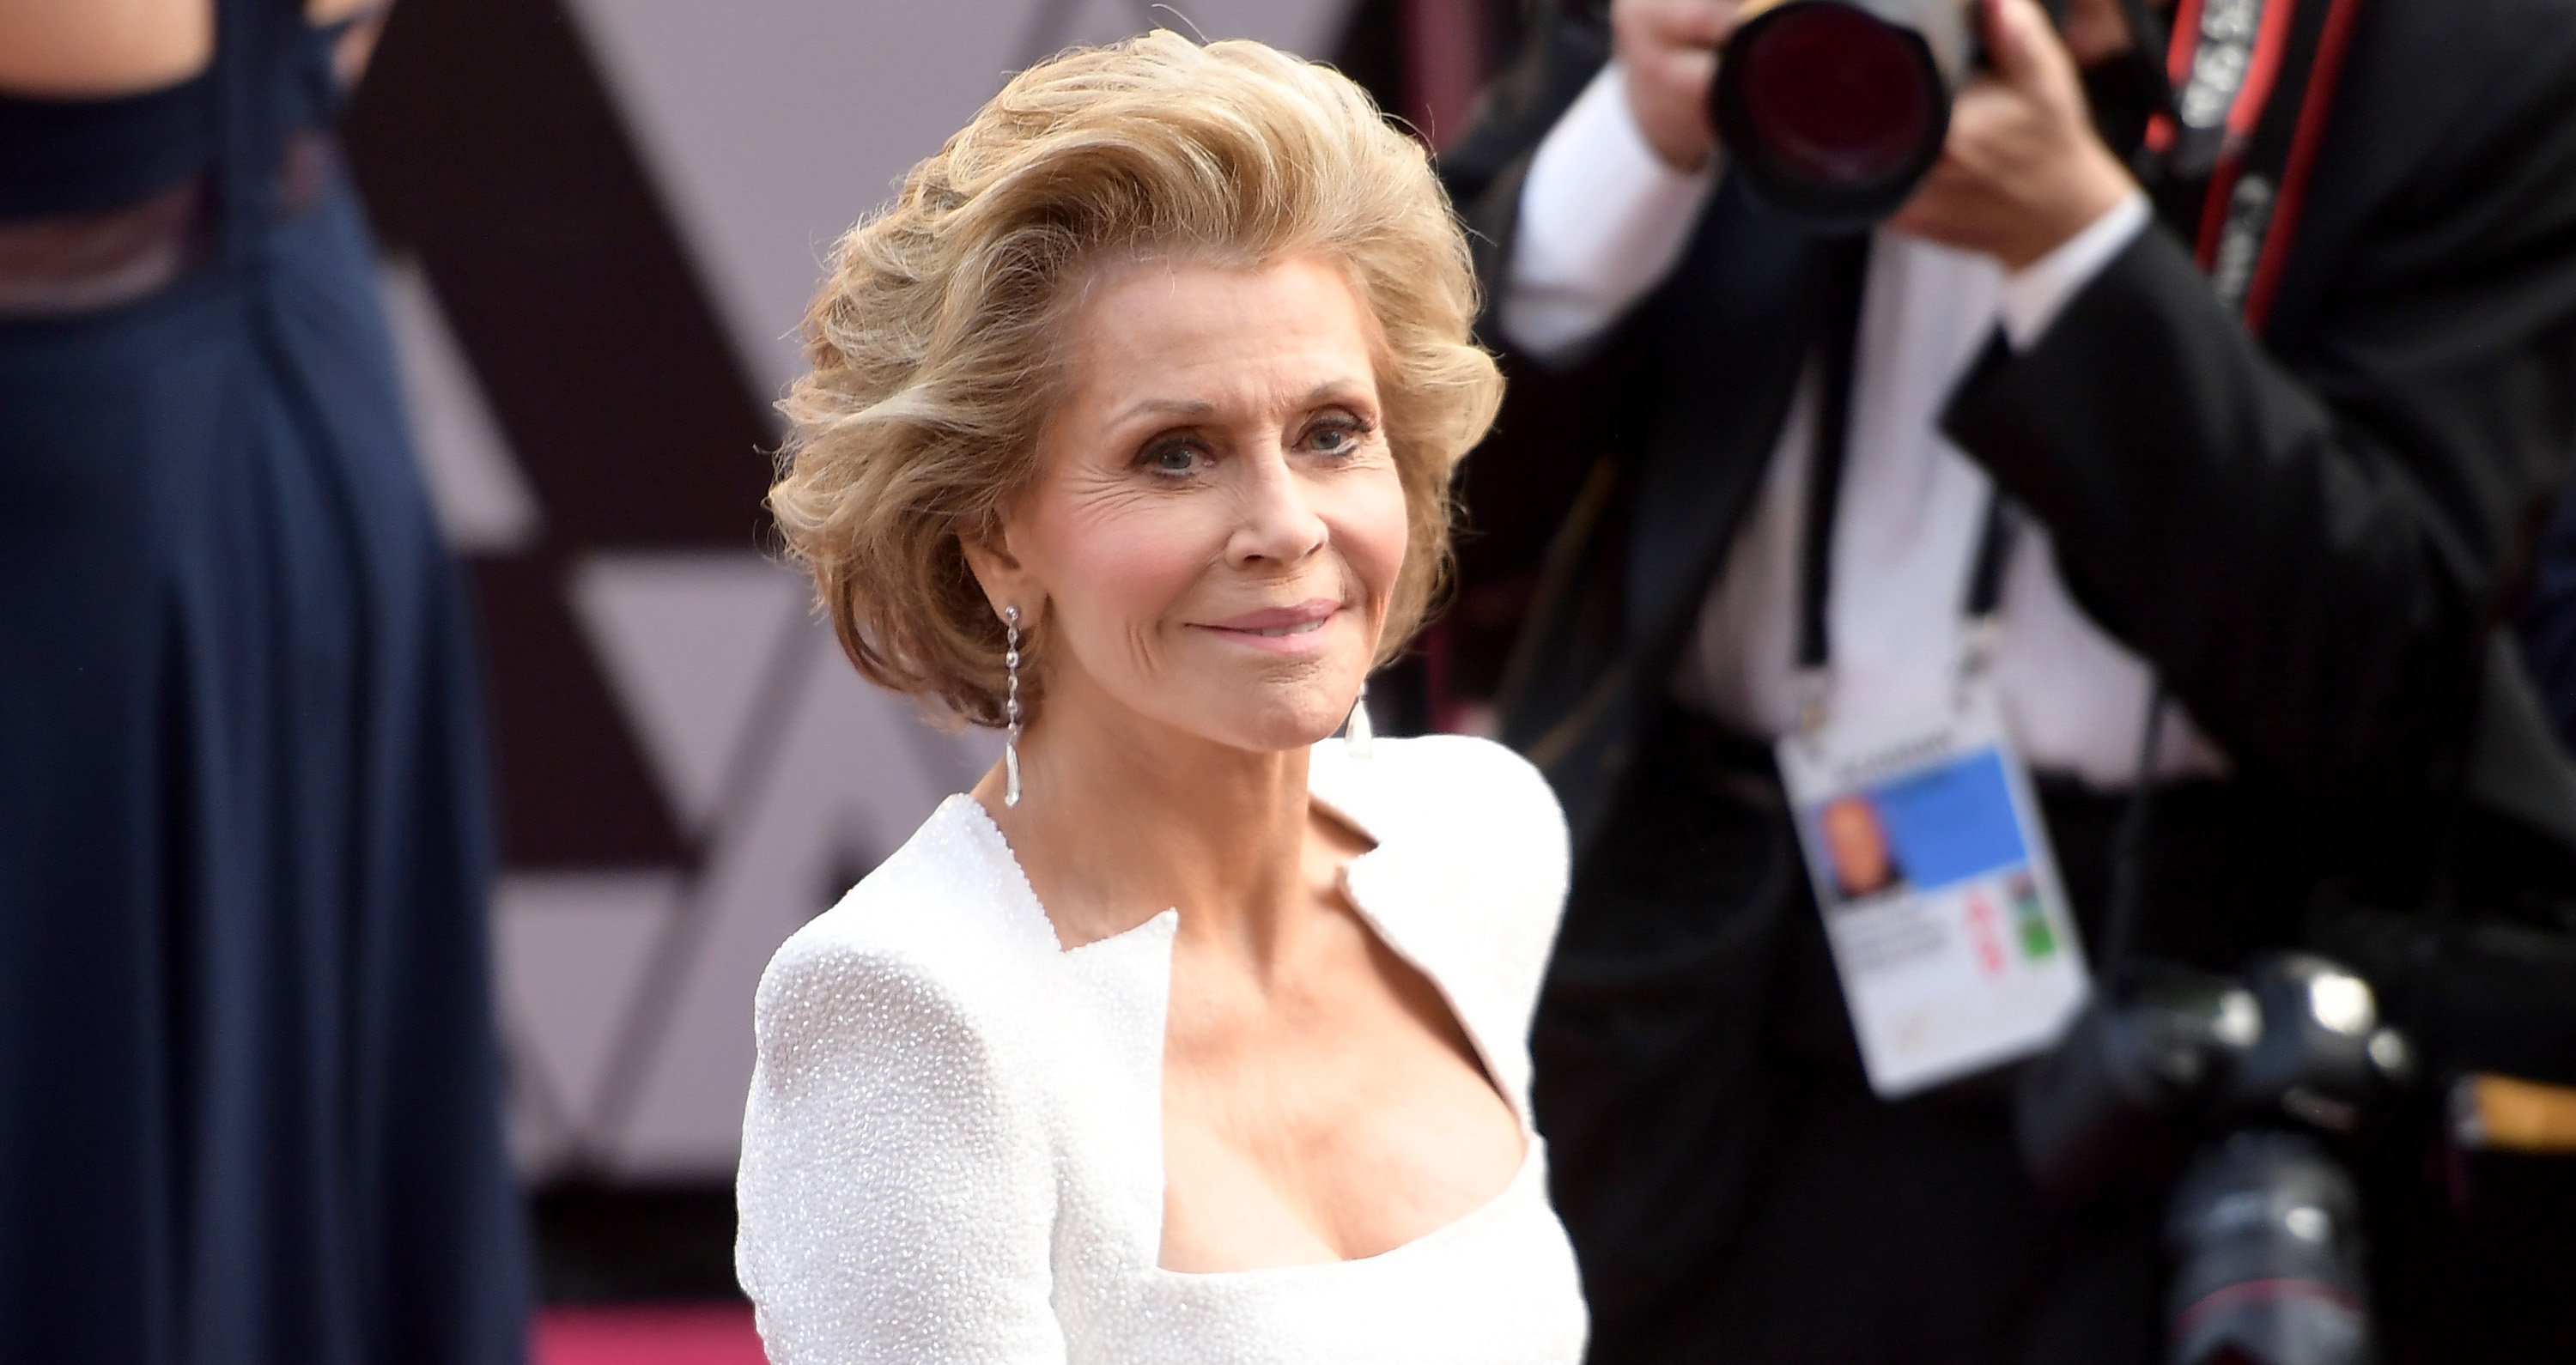 Jane Fonda Opens Up About Her 'Ongoing' Battle With Cancer: 'I Was a Sun-Worshipper'